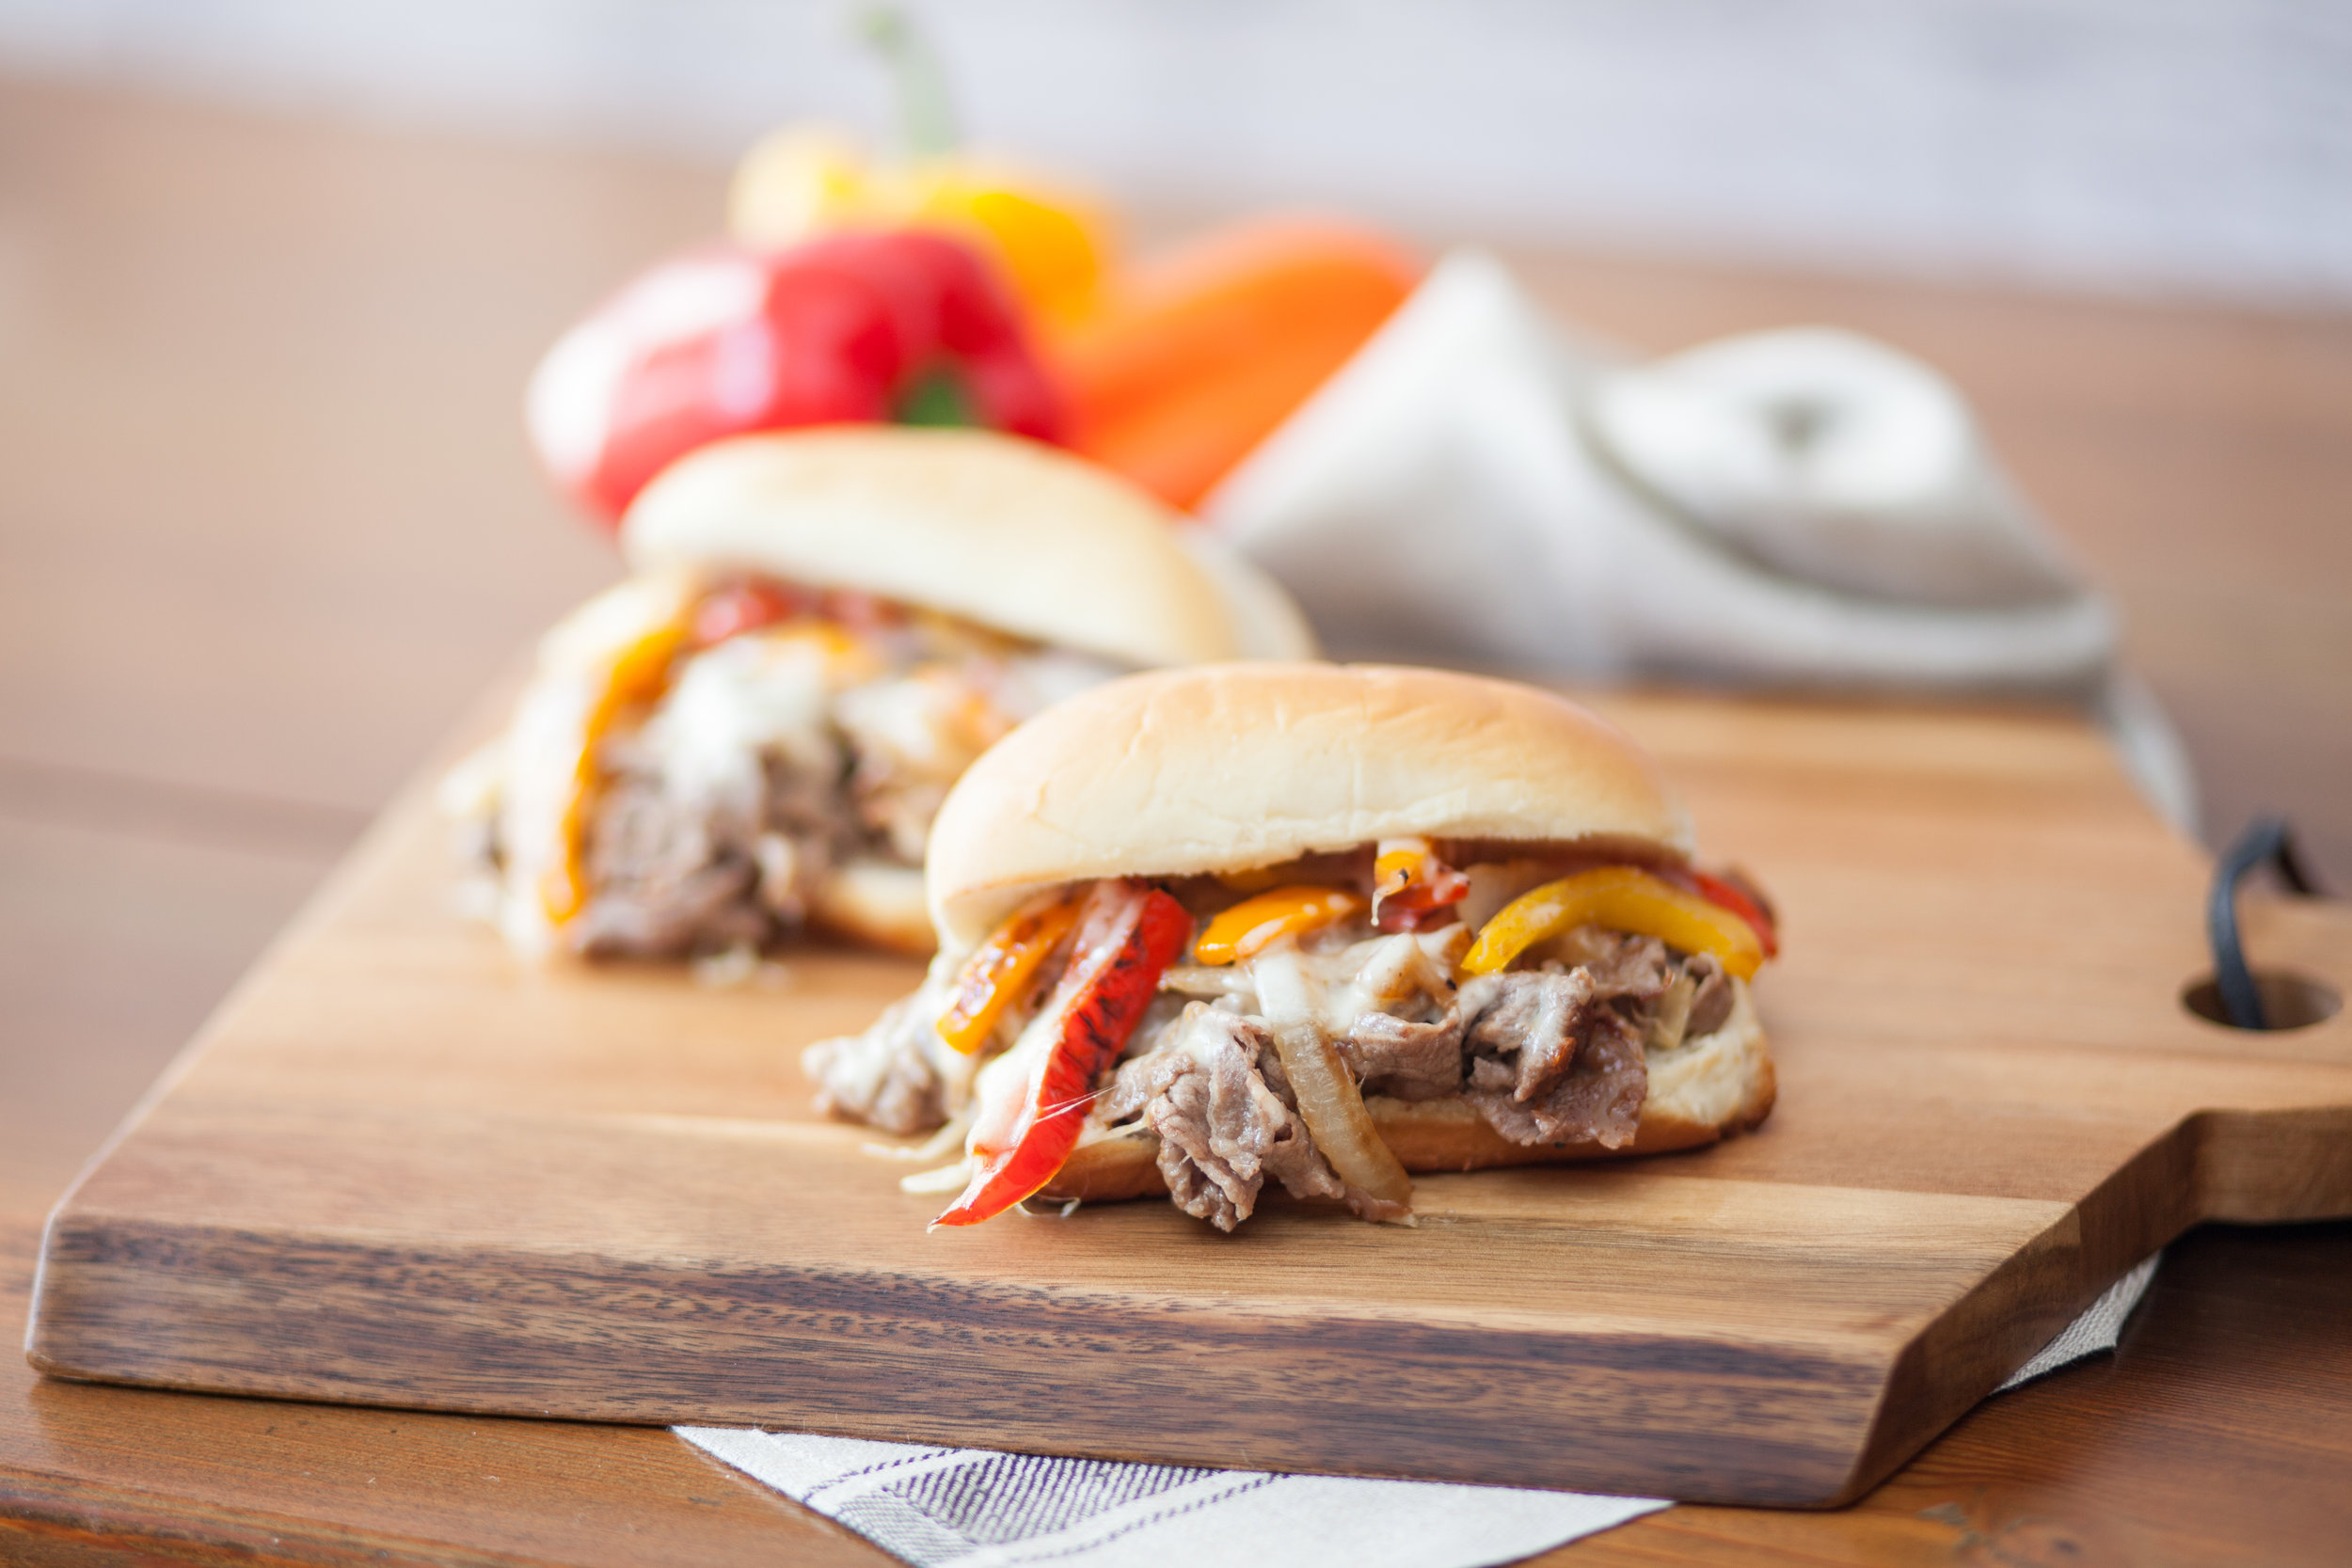 Top Tailgating Recipes - A good tailgate party sets the mood for the whole viewing experience and is a great opportunity to chillax with your friends. So while everyone else is grilling lame regular hot dogs and hamburgers, you can host something a little extra with these Top Tailgate Recipes.